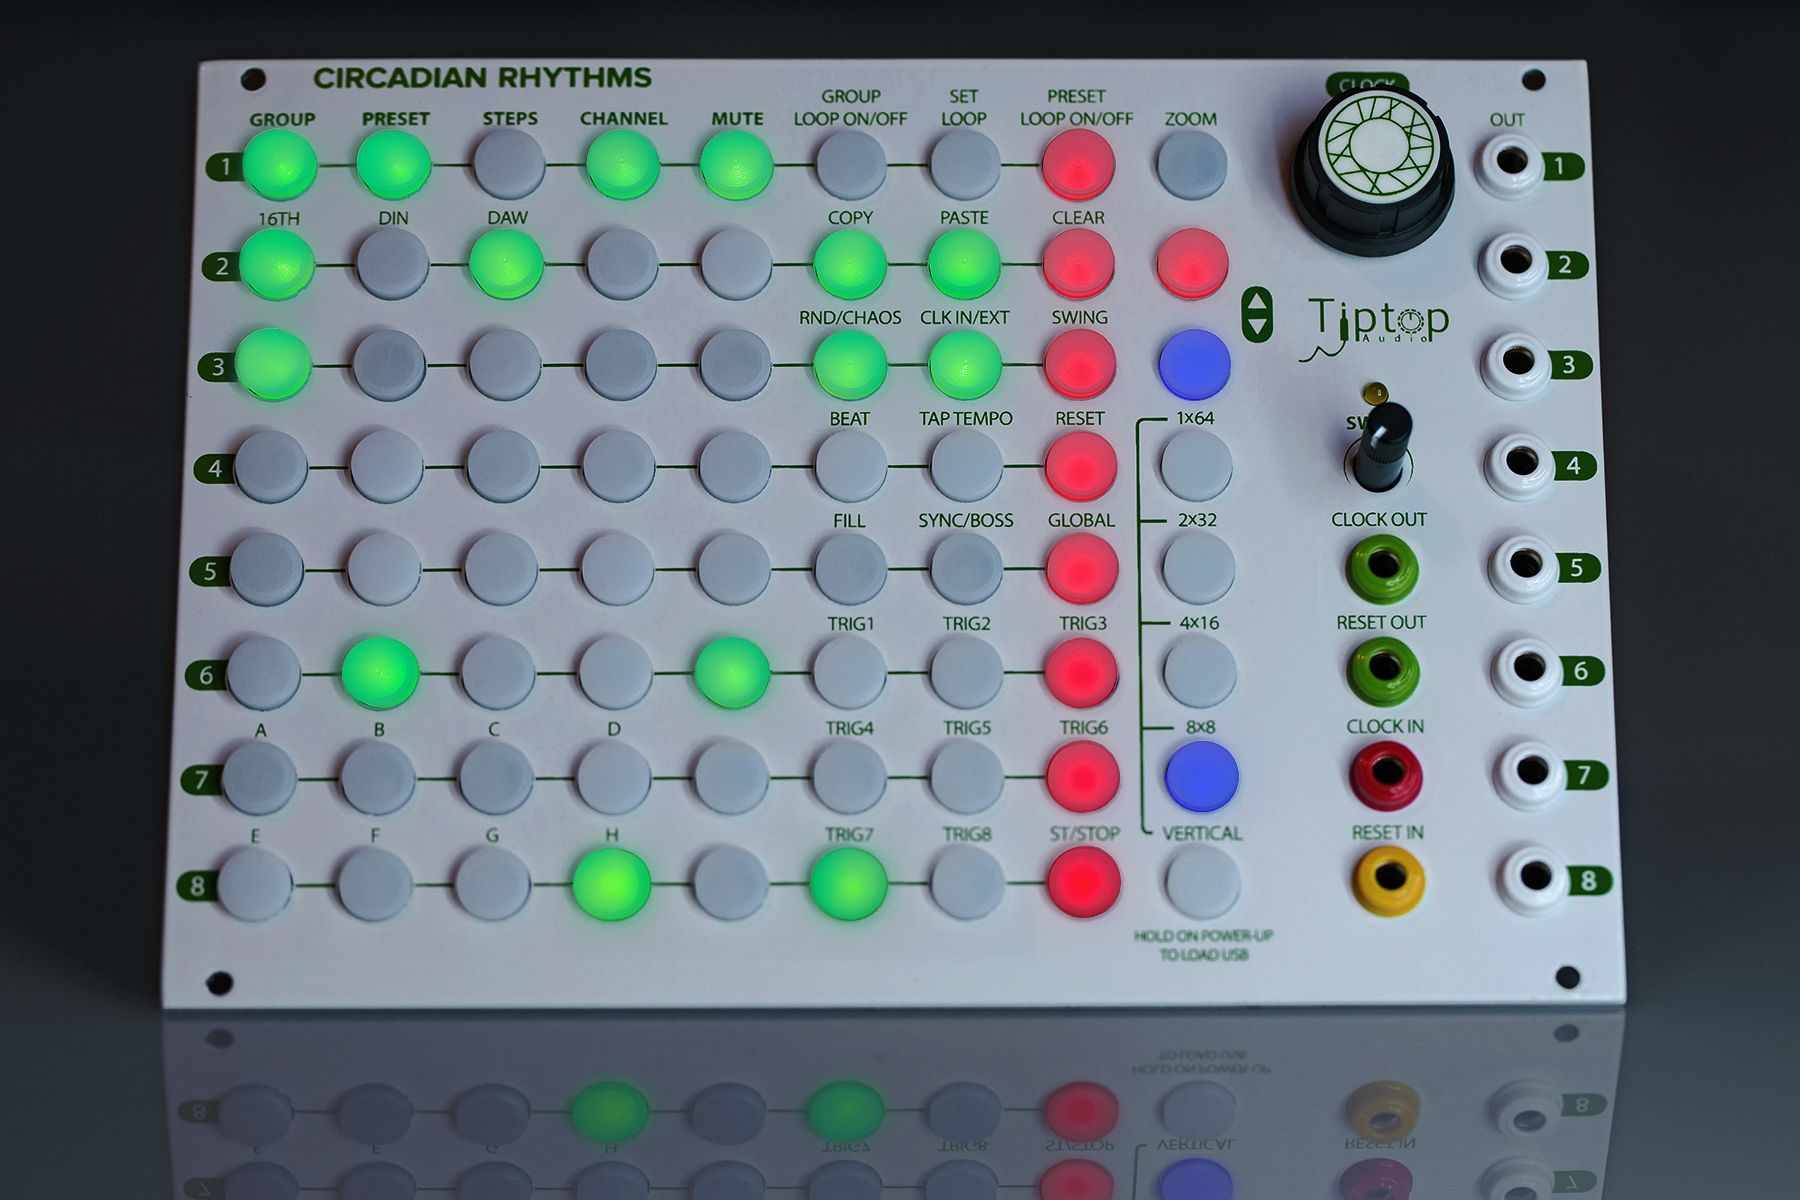 TipTop Audio Circadian Rhythms Grid Sequencer close-up.